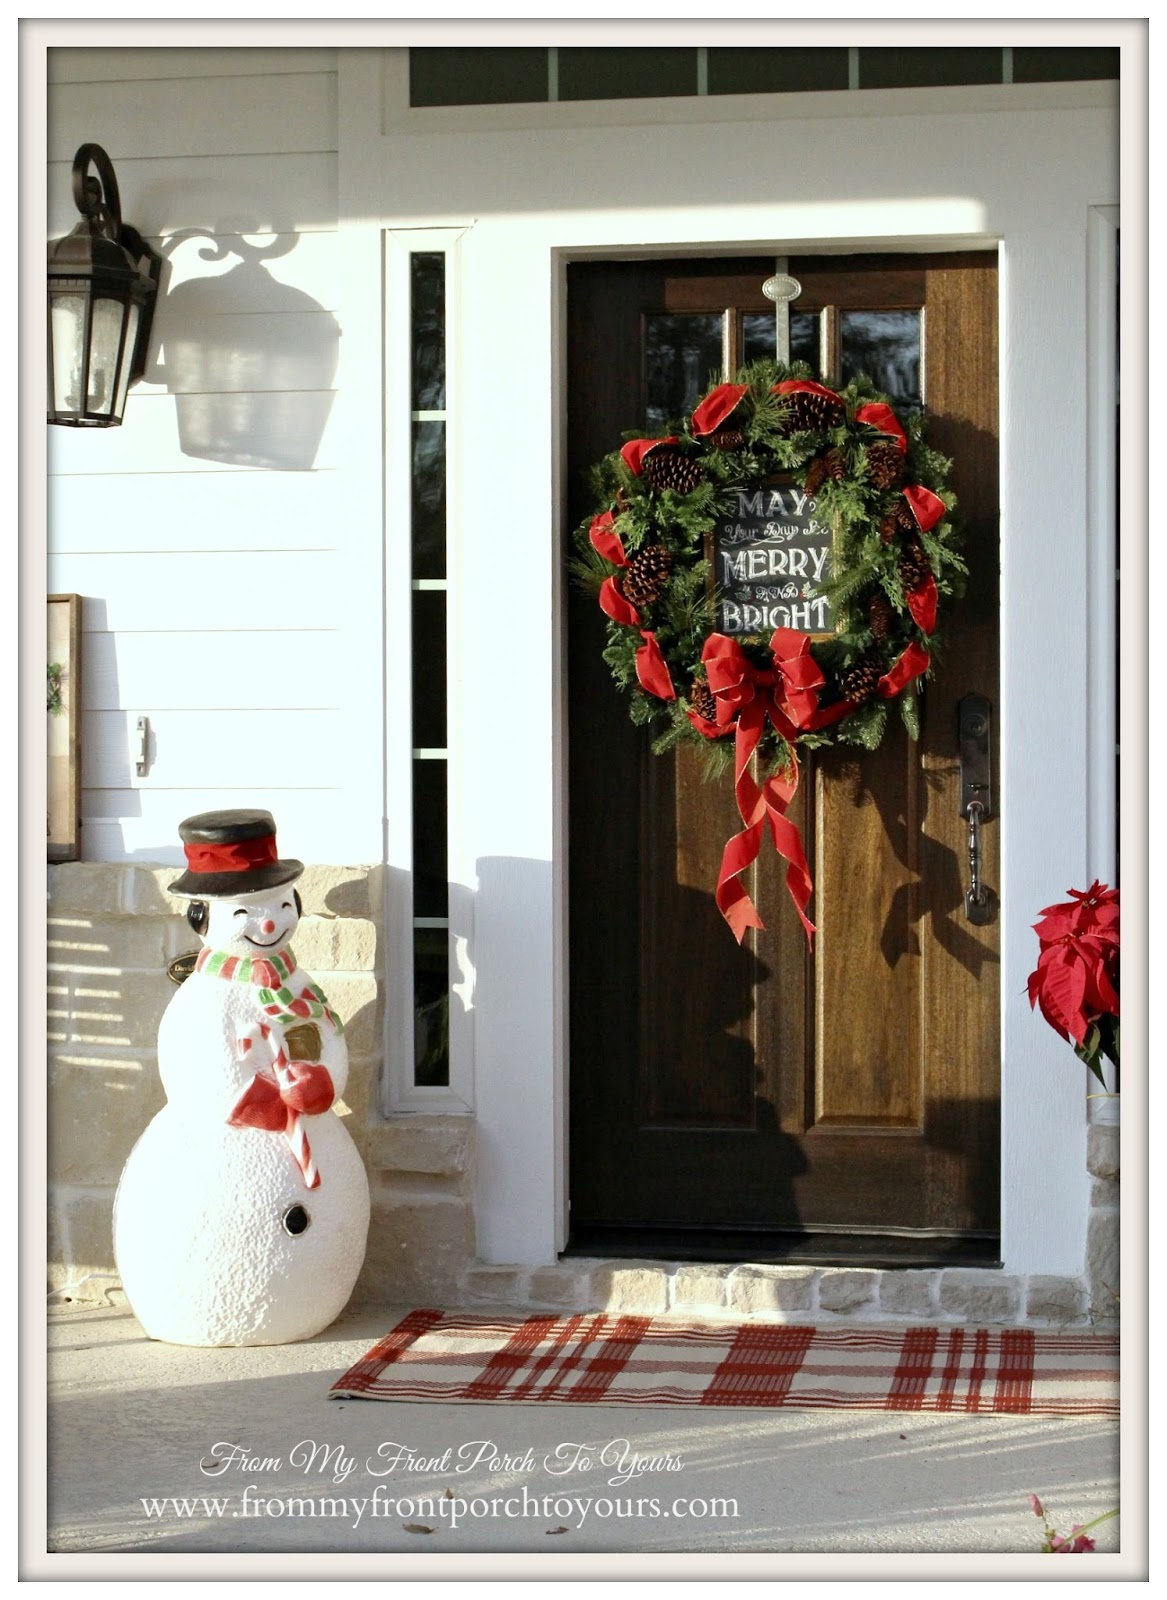 From My Front Porch To Yours Farmhouse Christmas Porch 2016